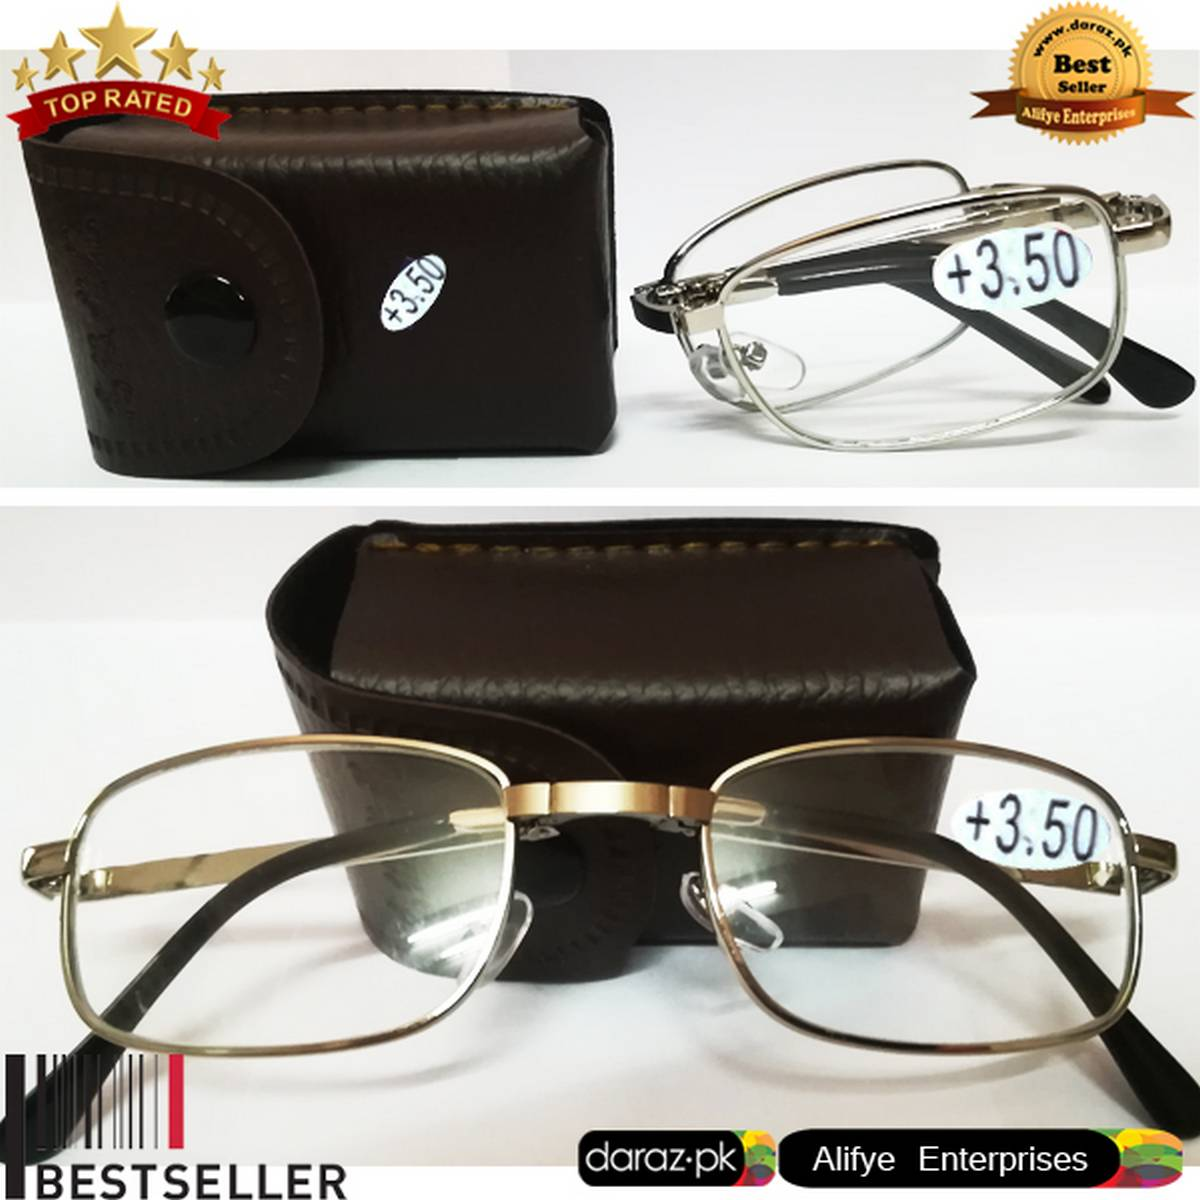 Imported Foldable Optical Reading Glasses +3.50 Prescription Eyeglass Metal Men & Women Ray Computer Working Folding Reading Glasses with Case